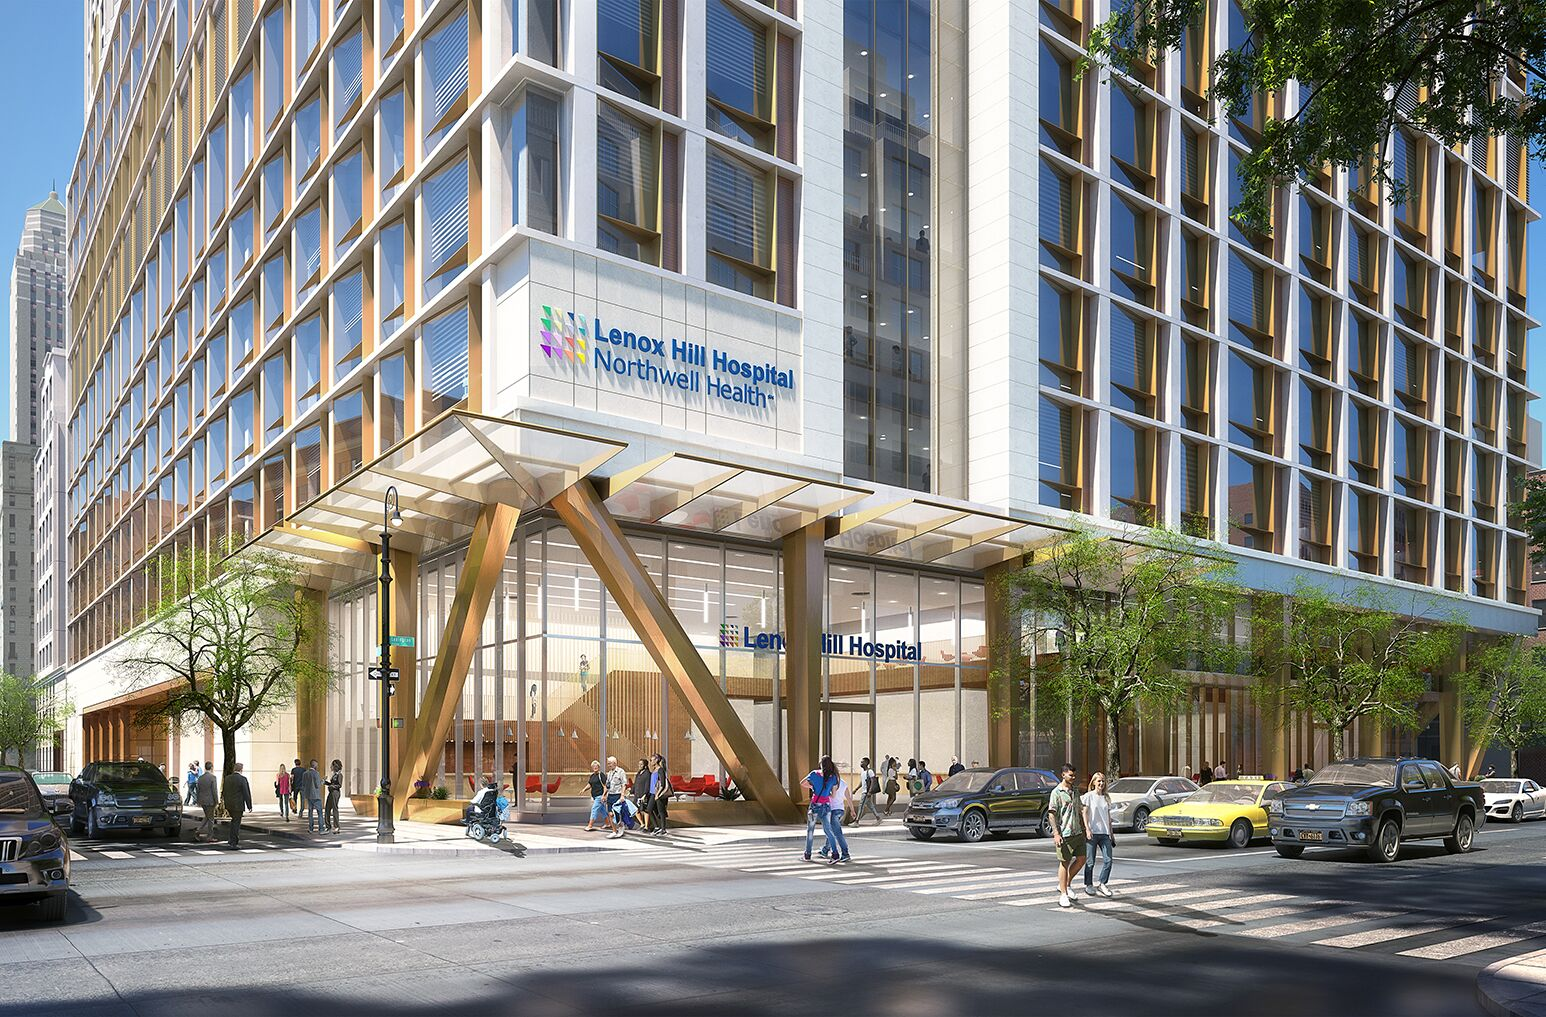 An artist rendering of the proposed Lenox Hill Hospital renewal plan.